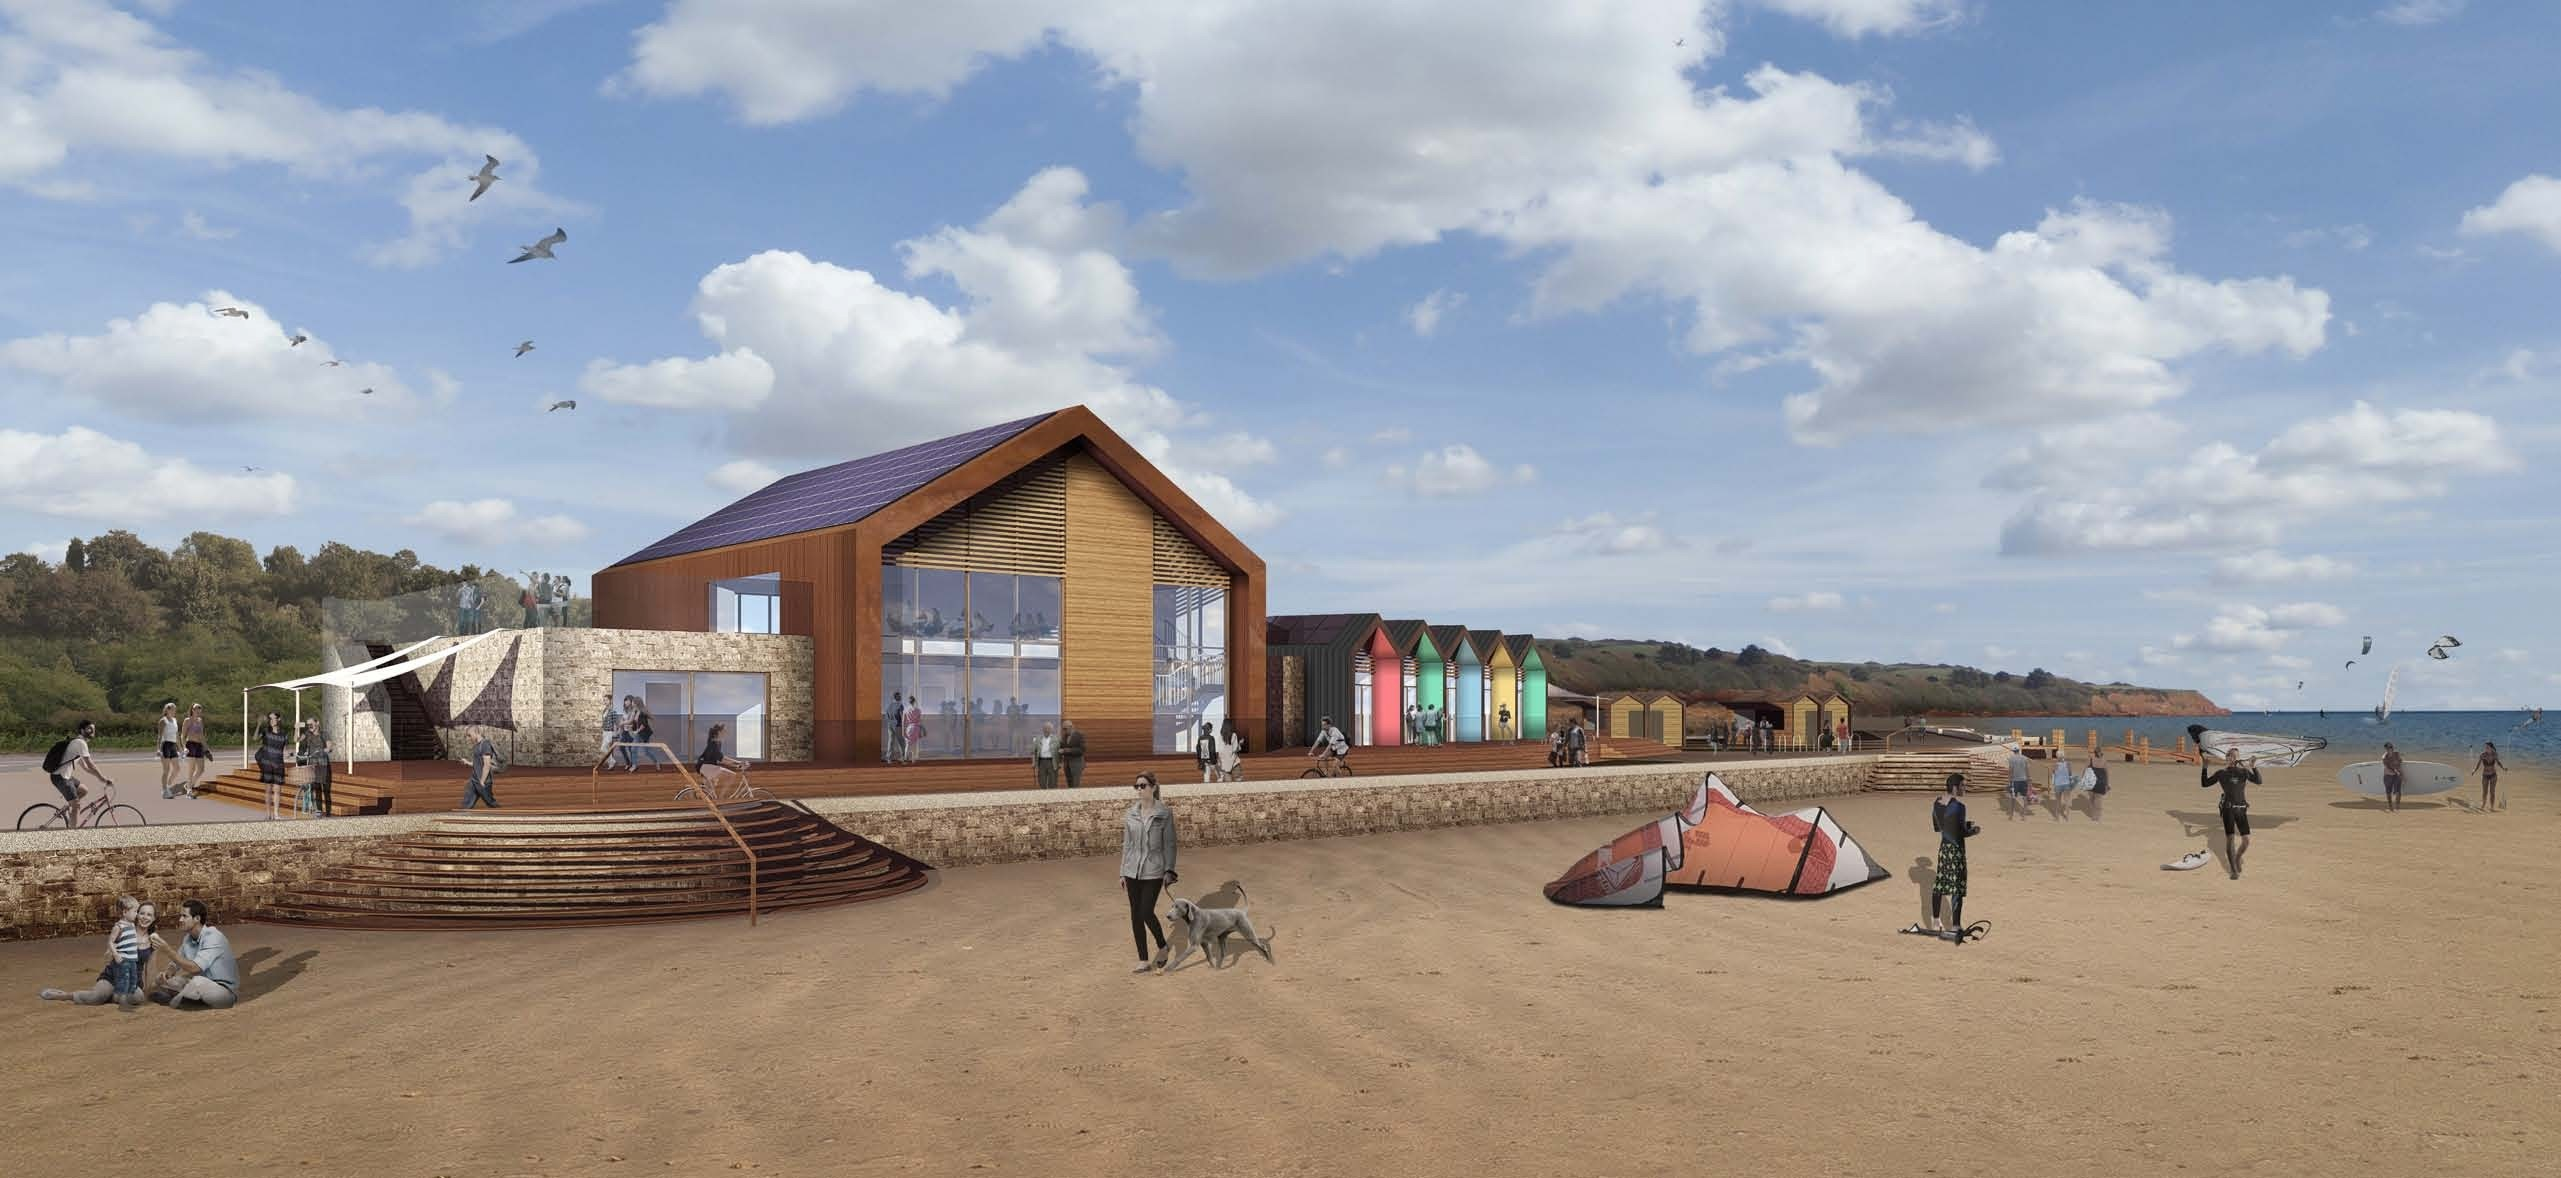 District council grants planning permission for new water sports centre in Exmouth